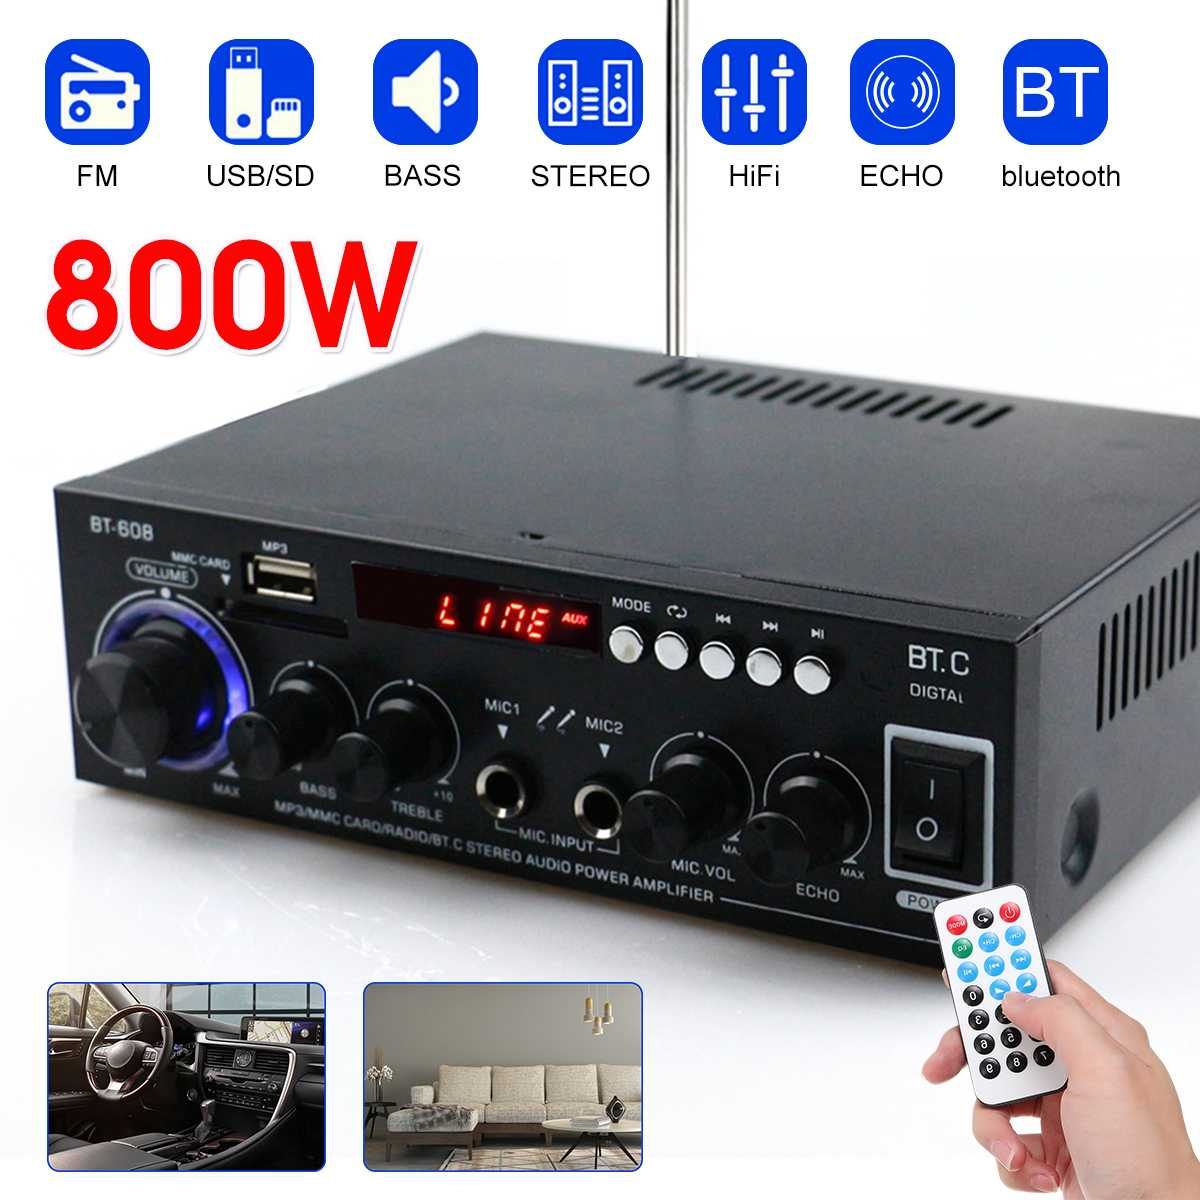 800W HIFI 2CH Audio Power Amplifier 110/220V Home Theater Sound System Audio Mini Amplifier FM USB SD Bluetooth W/Remote Control